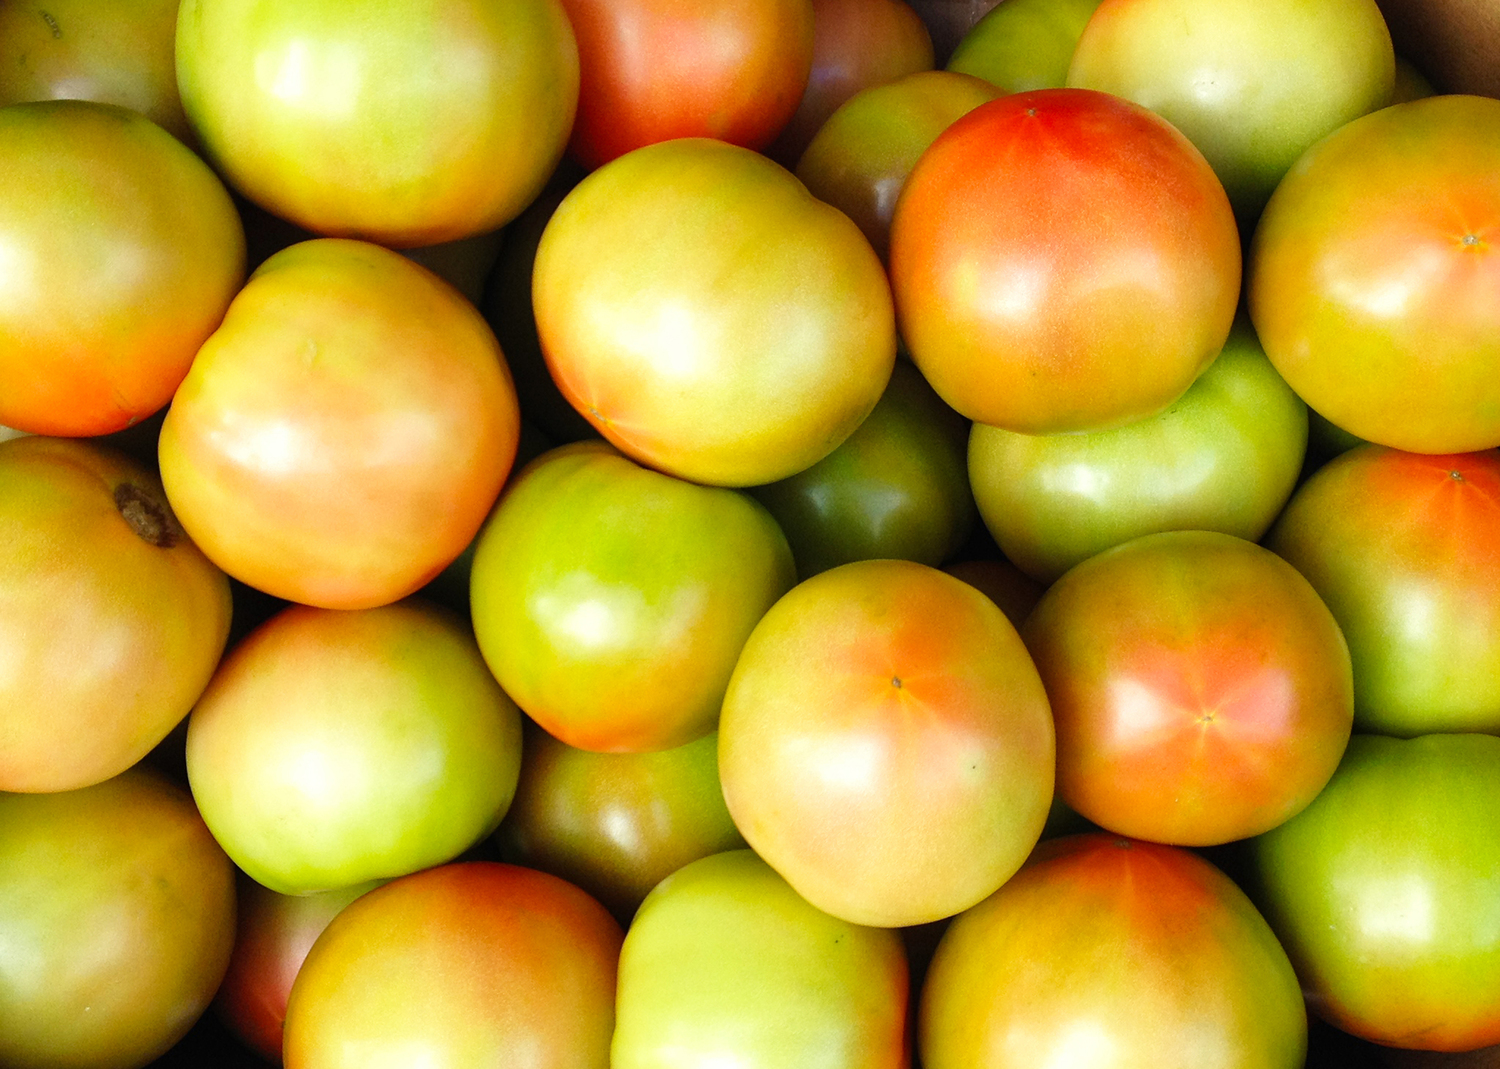 Tomatoes (Mixed red & green) - Medium sized